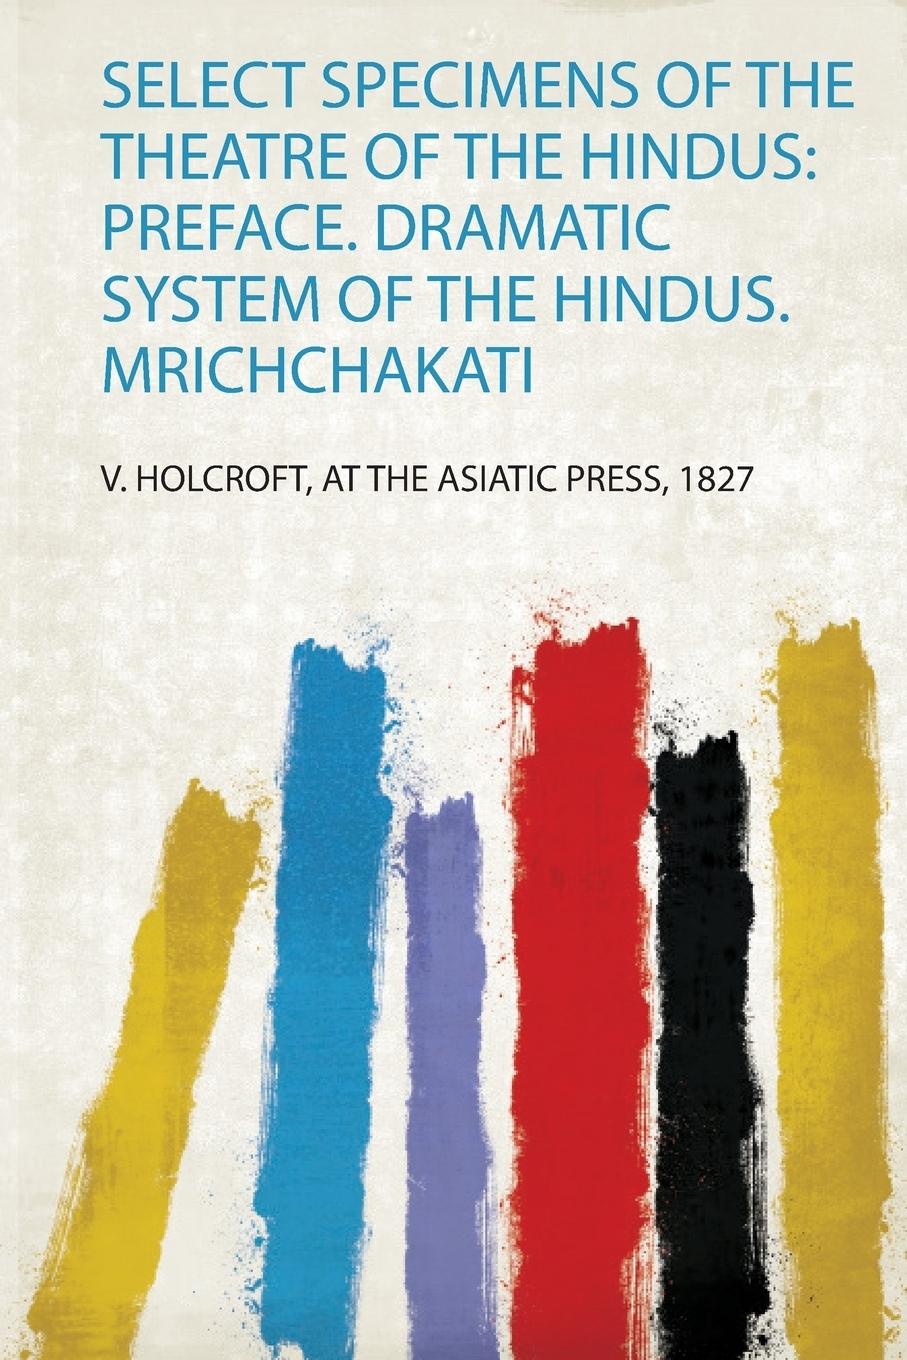 купить Select Specimens of the Theatre of the Hindus. Preface. Dramatic System of the Hindus. Mrichchakati онлайн